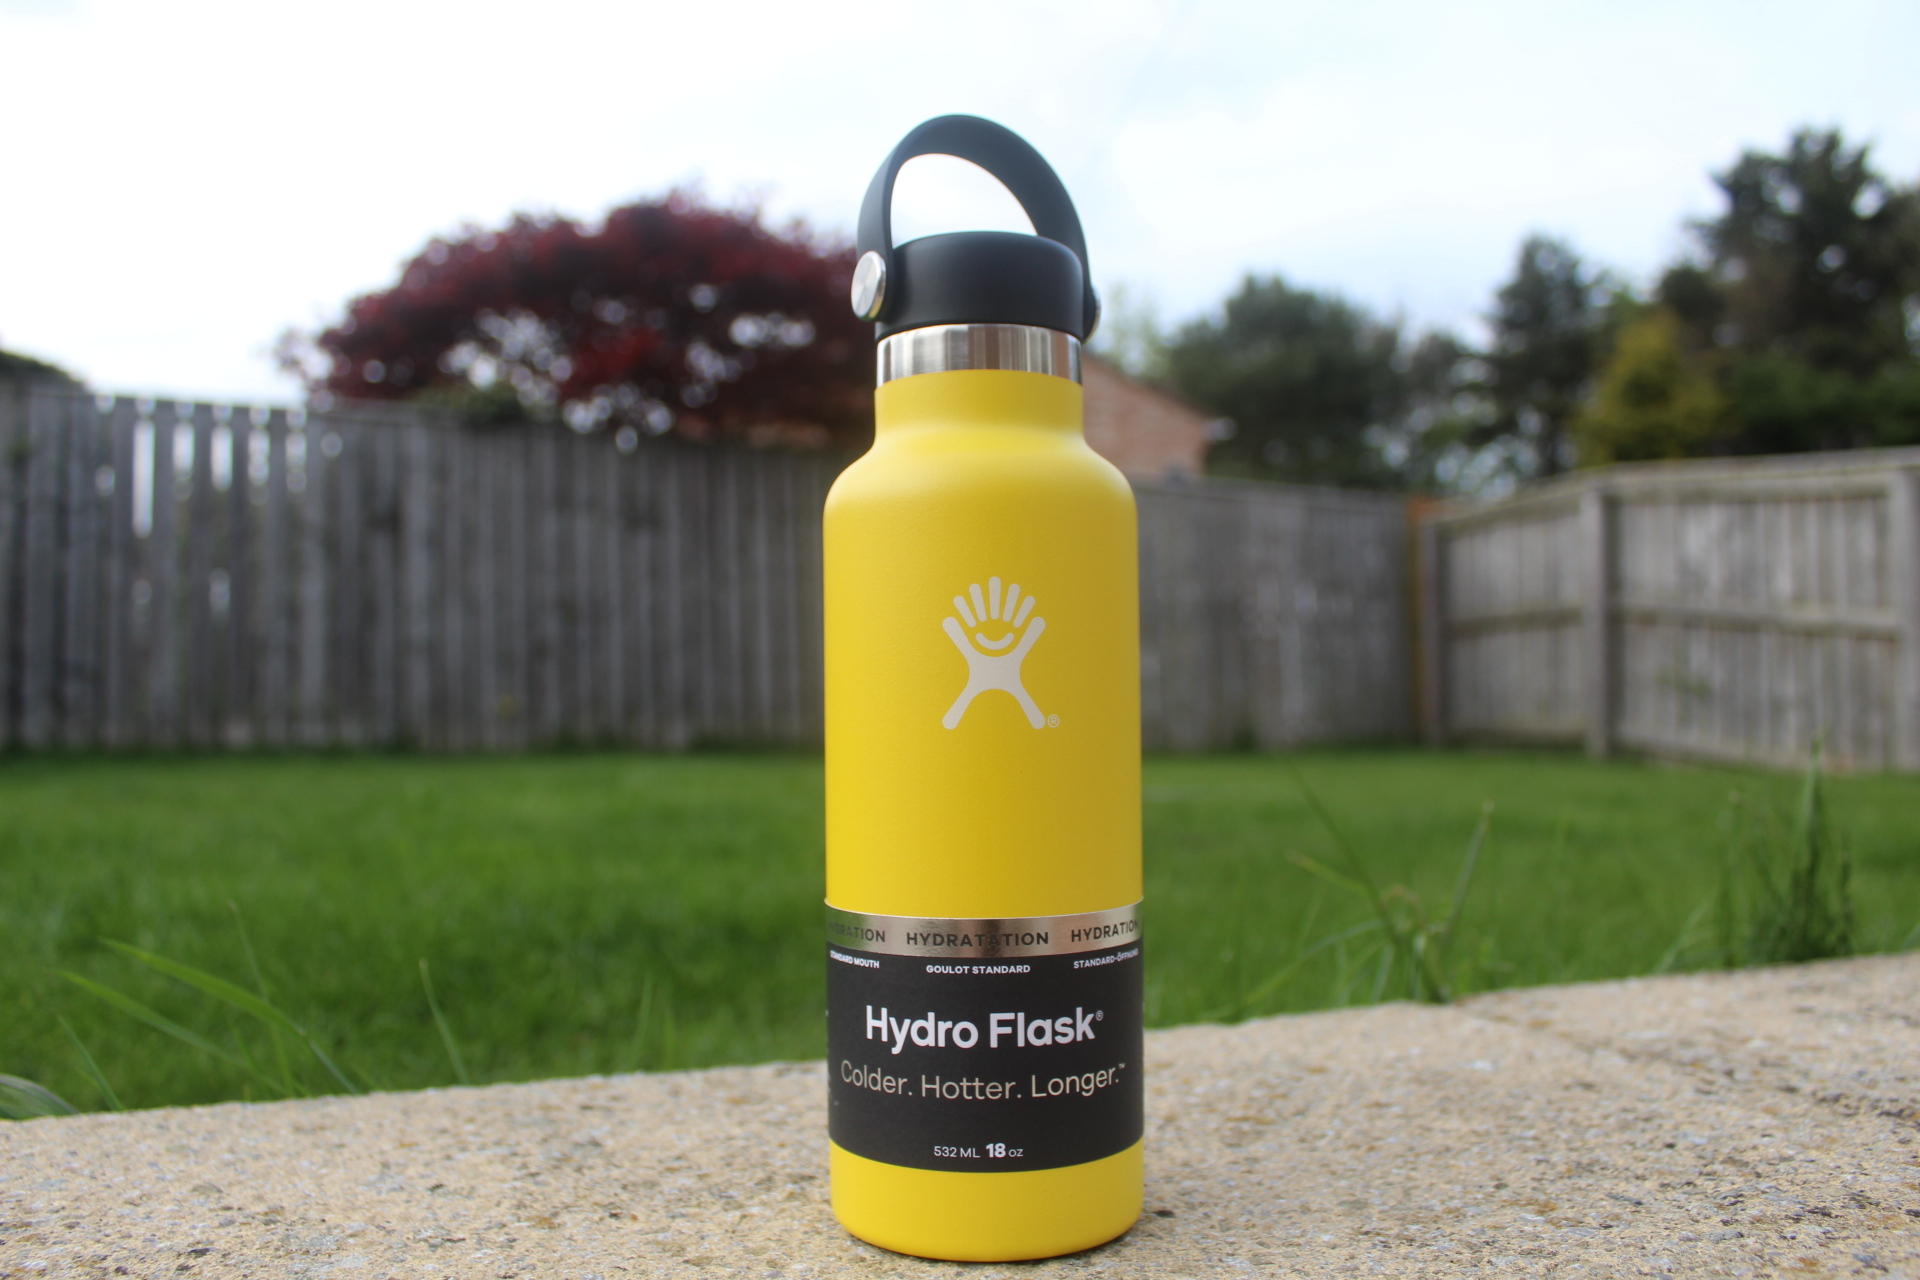 Hydro Flask Water Bottle - Sea pigs review